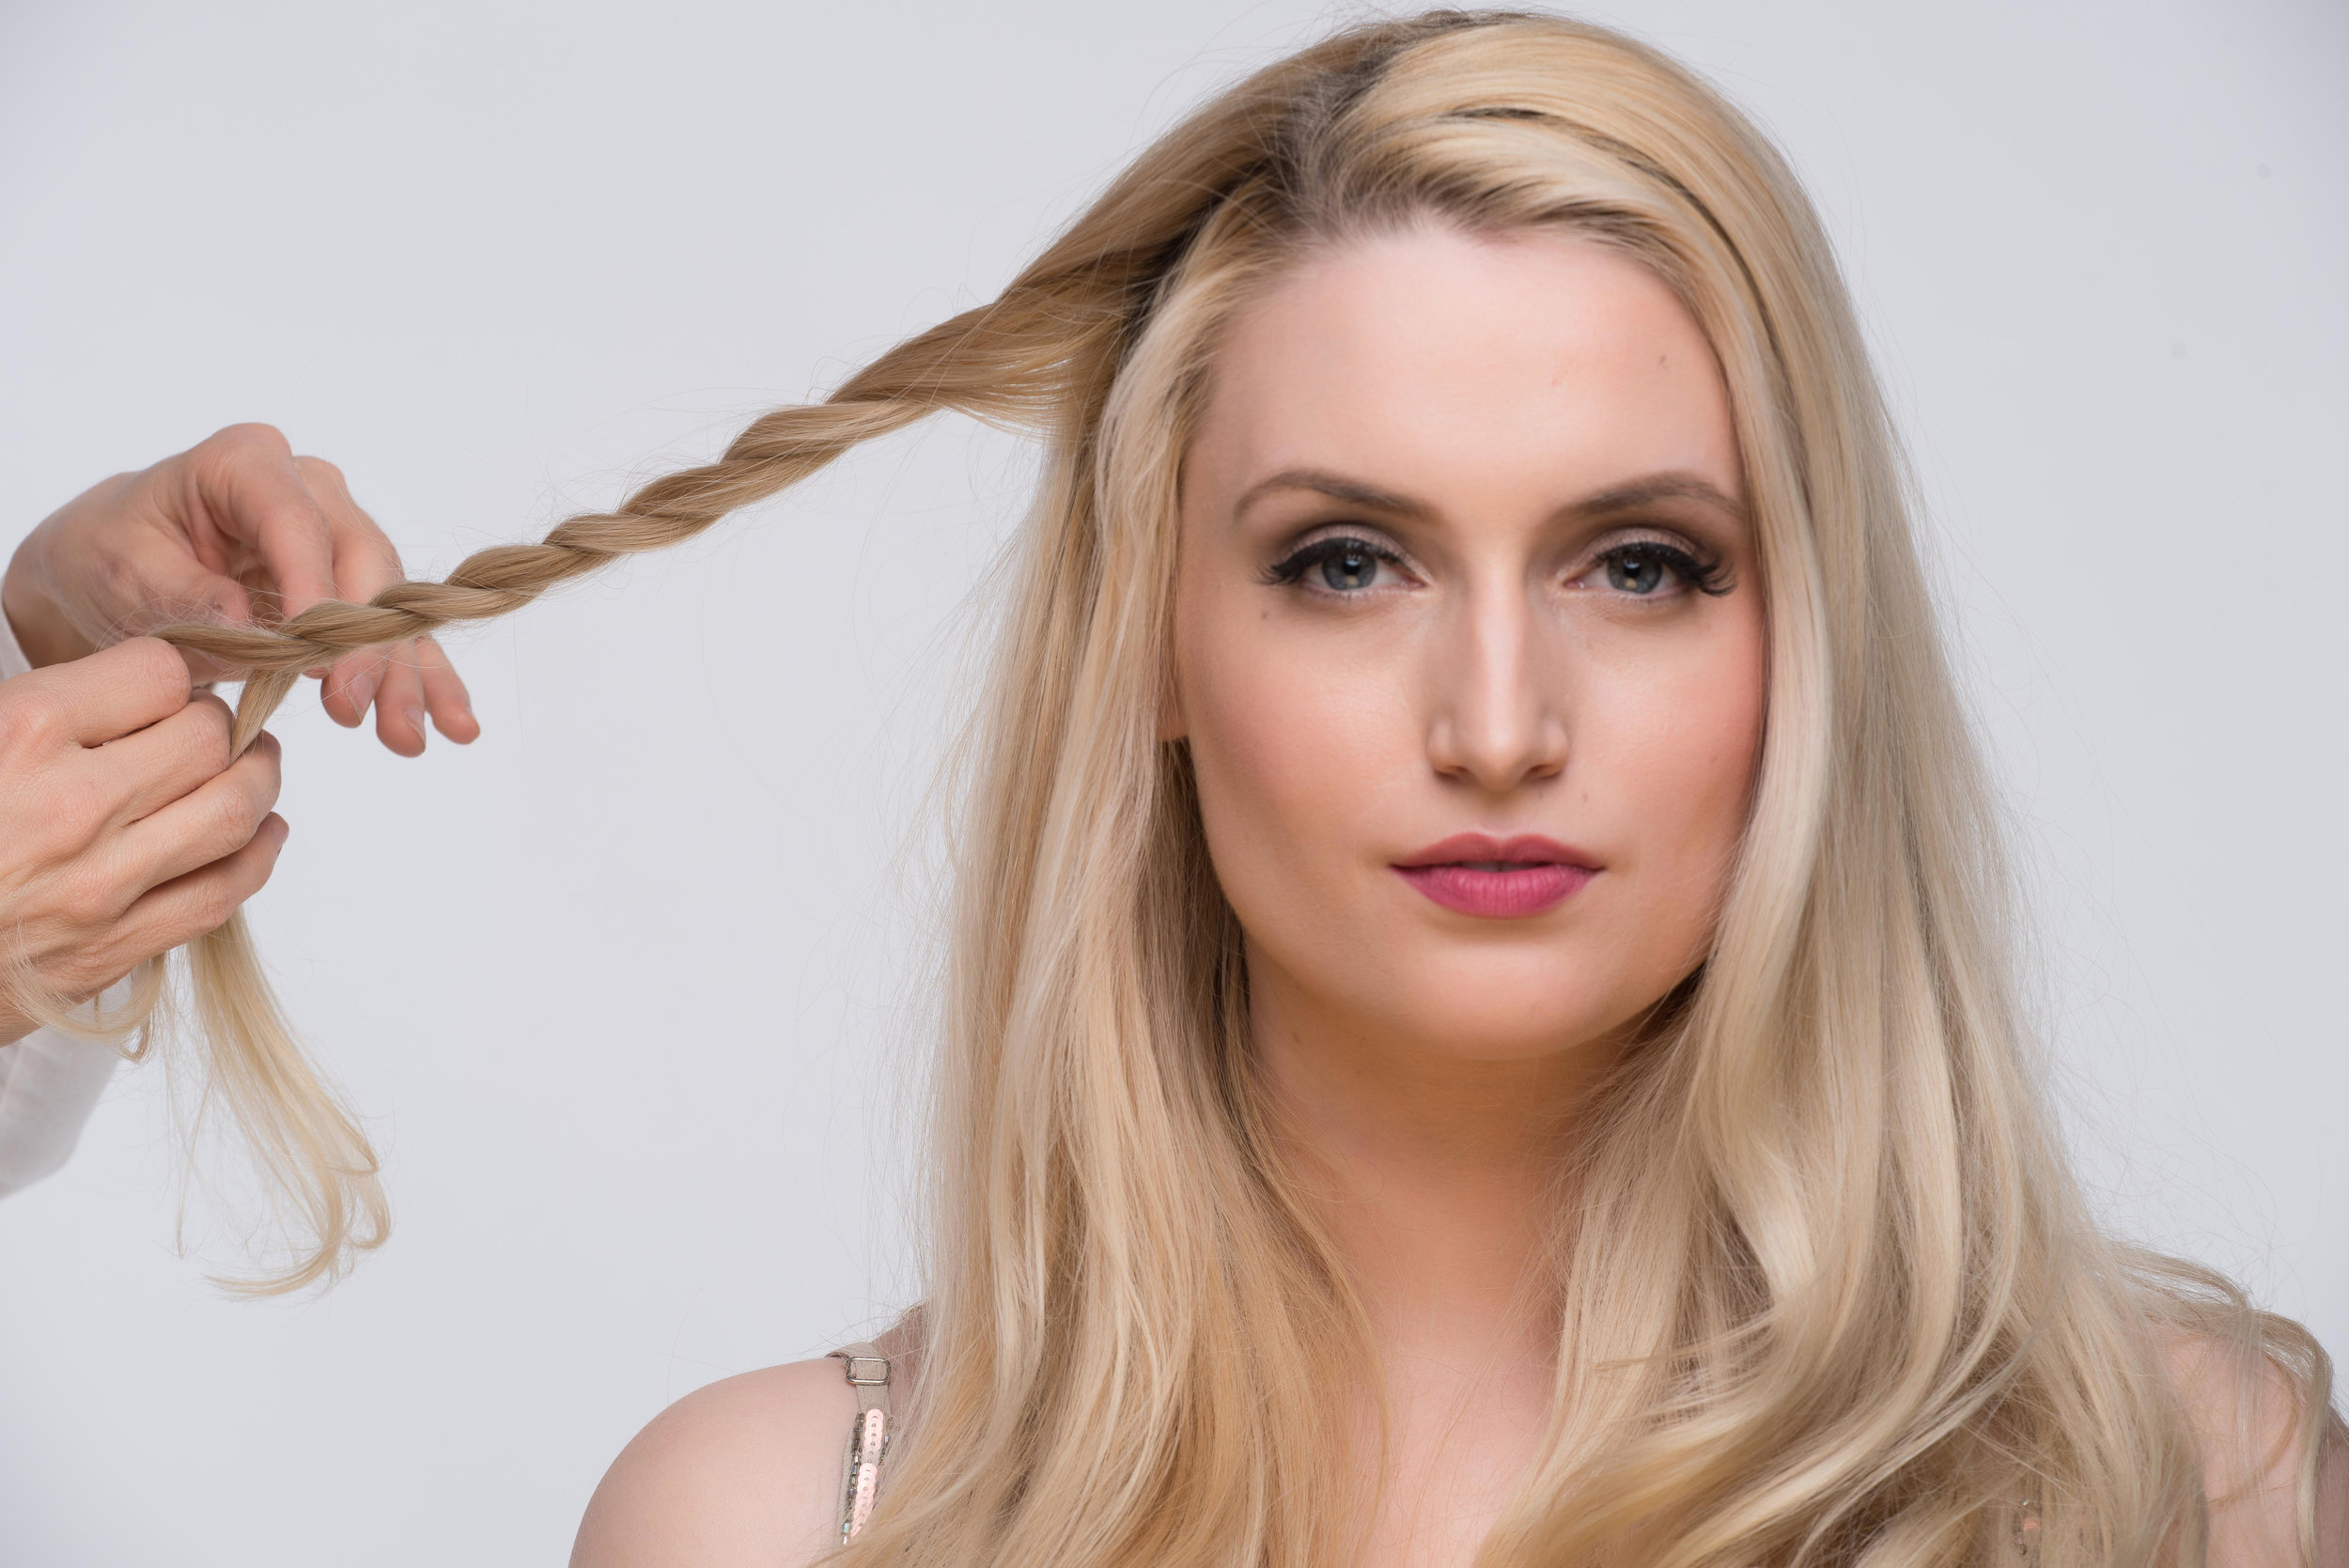 While twisting the hair, reserve the stand when twisting if you would like a tighter look